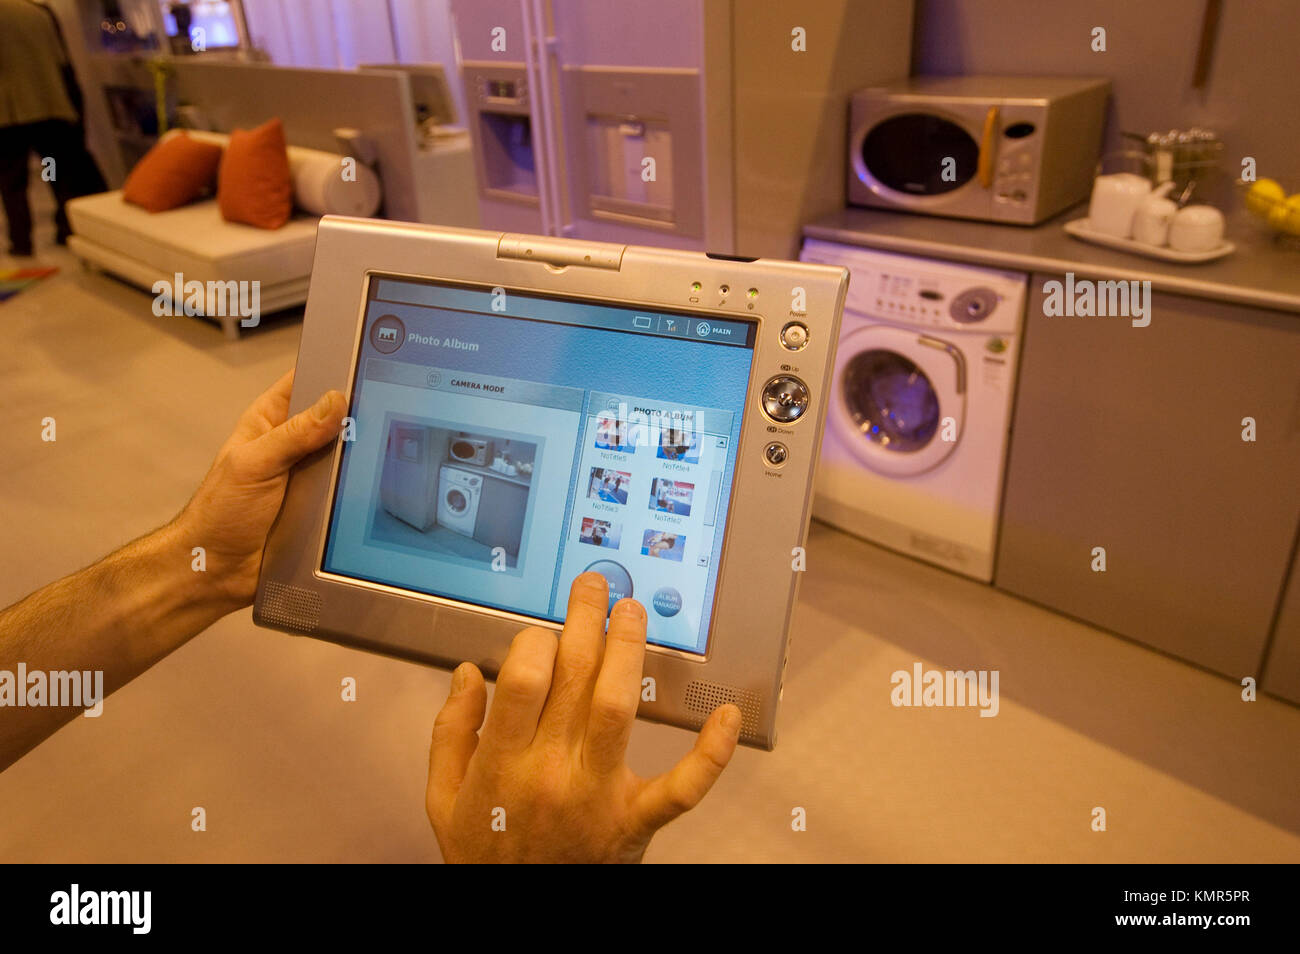 Samsung´s home vita domotic system, prepared to control all domestic electronic devices, SIMO TCI, International - Stock Image